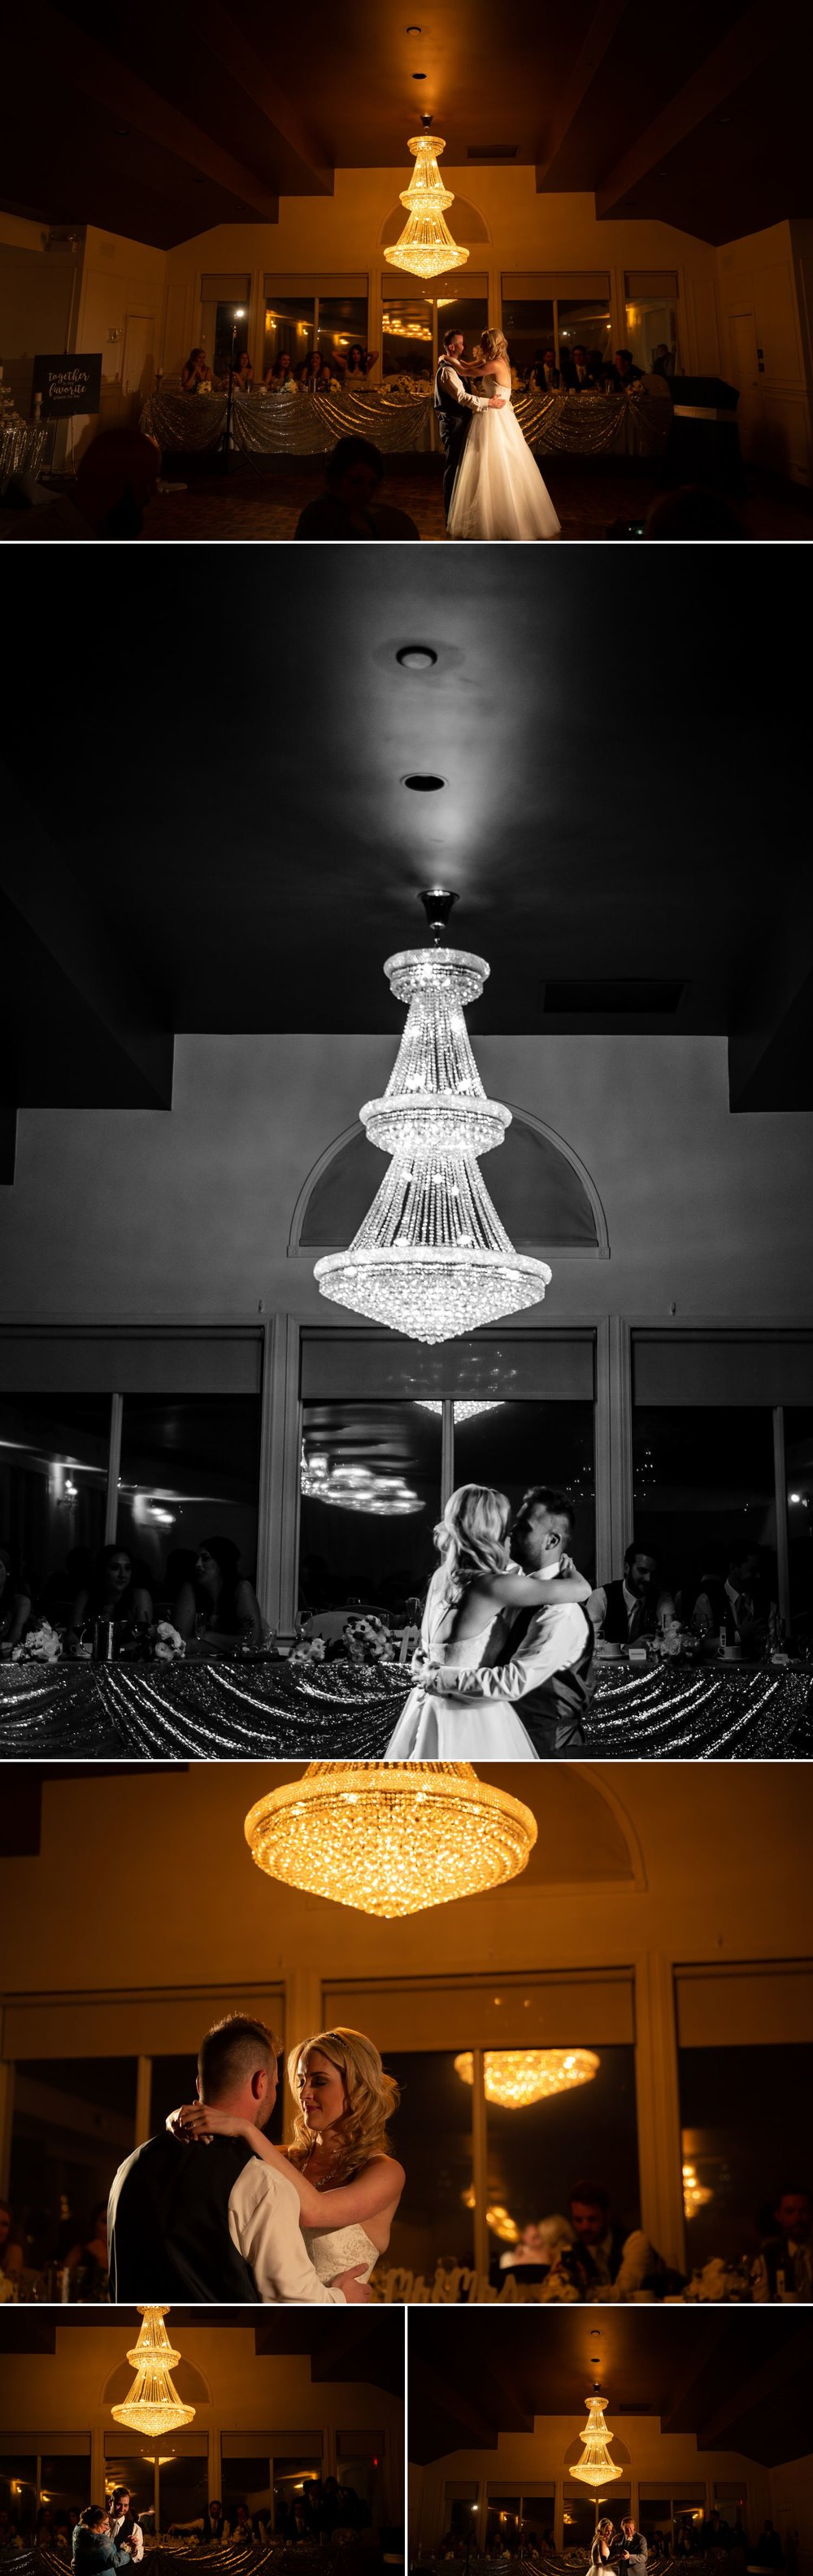 The bride and groom during their first dances during their wedding reception at Orchard View Wedding and Conference Centre